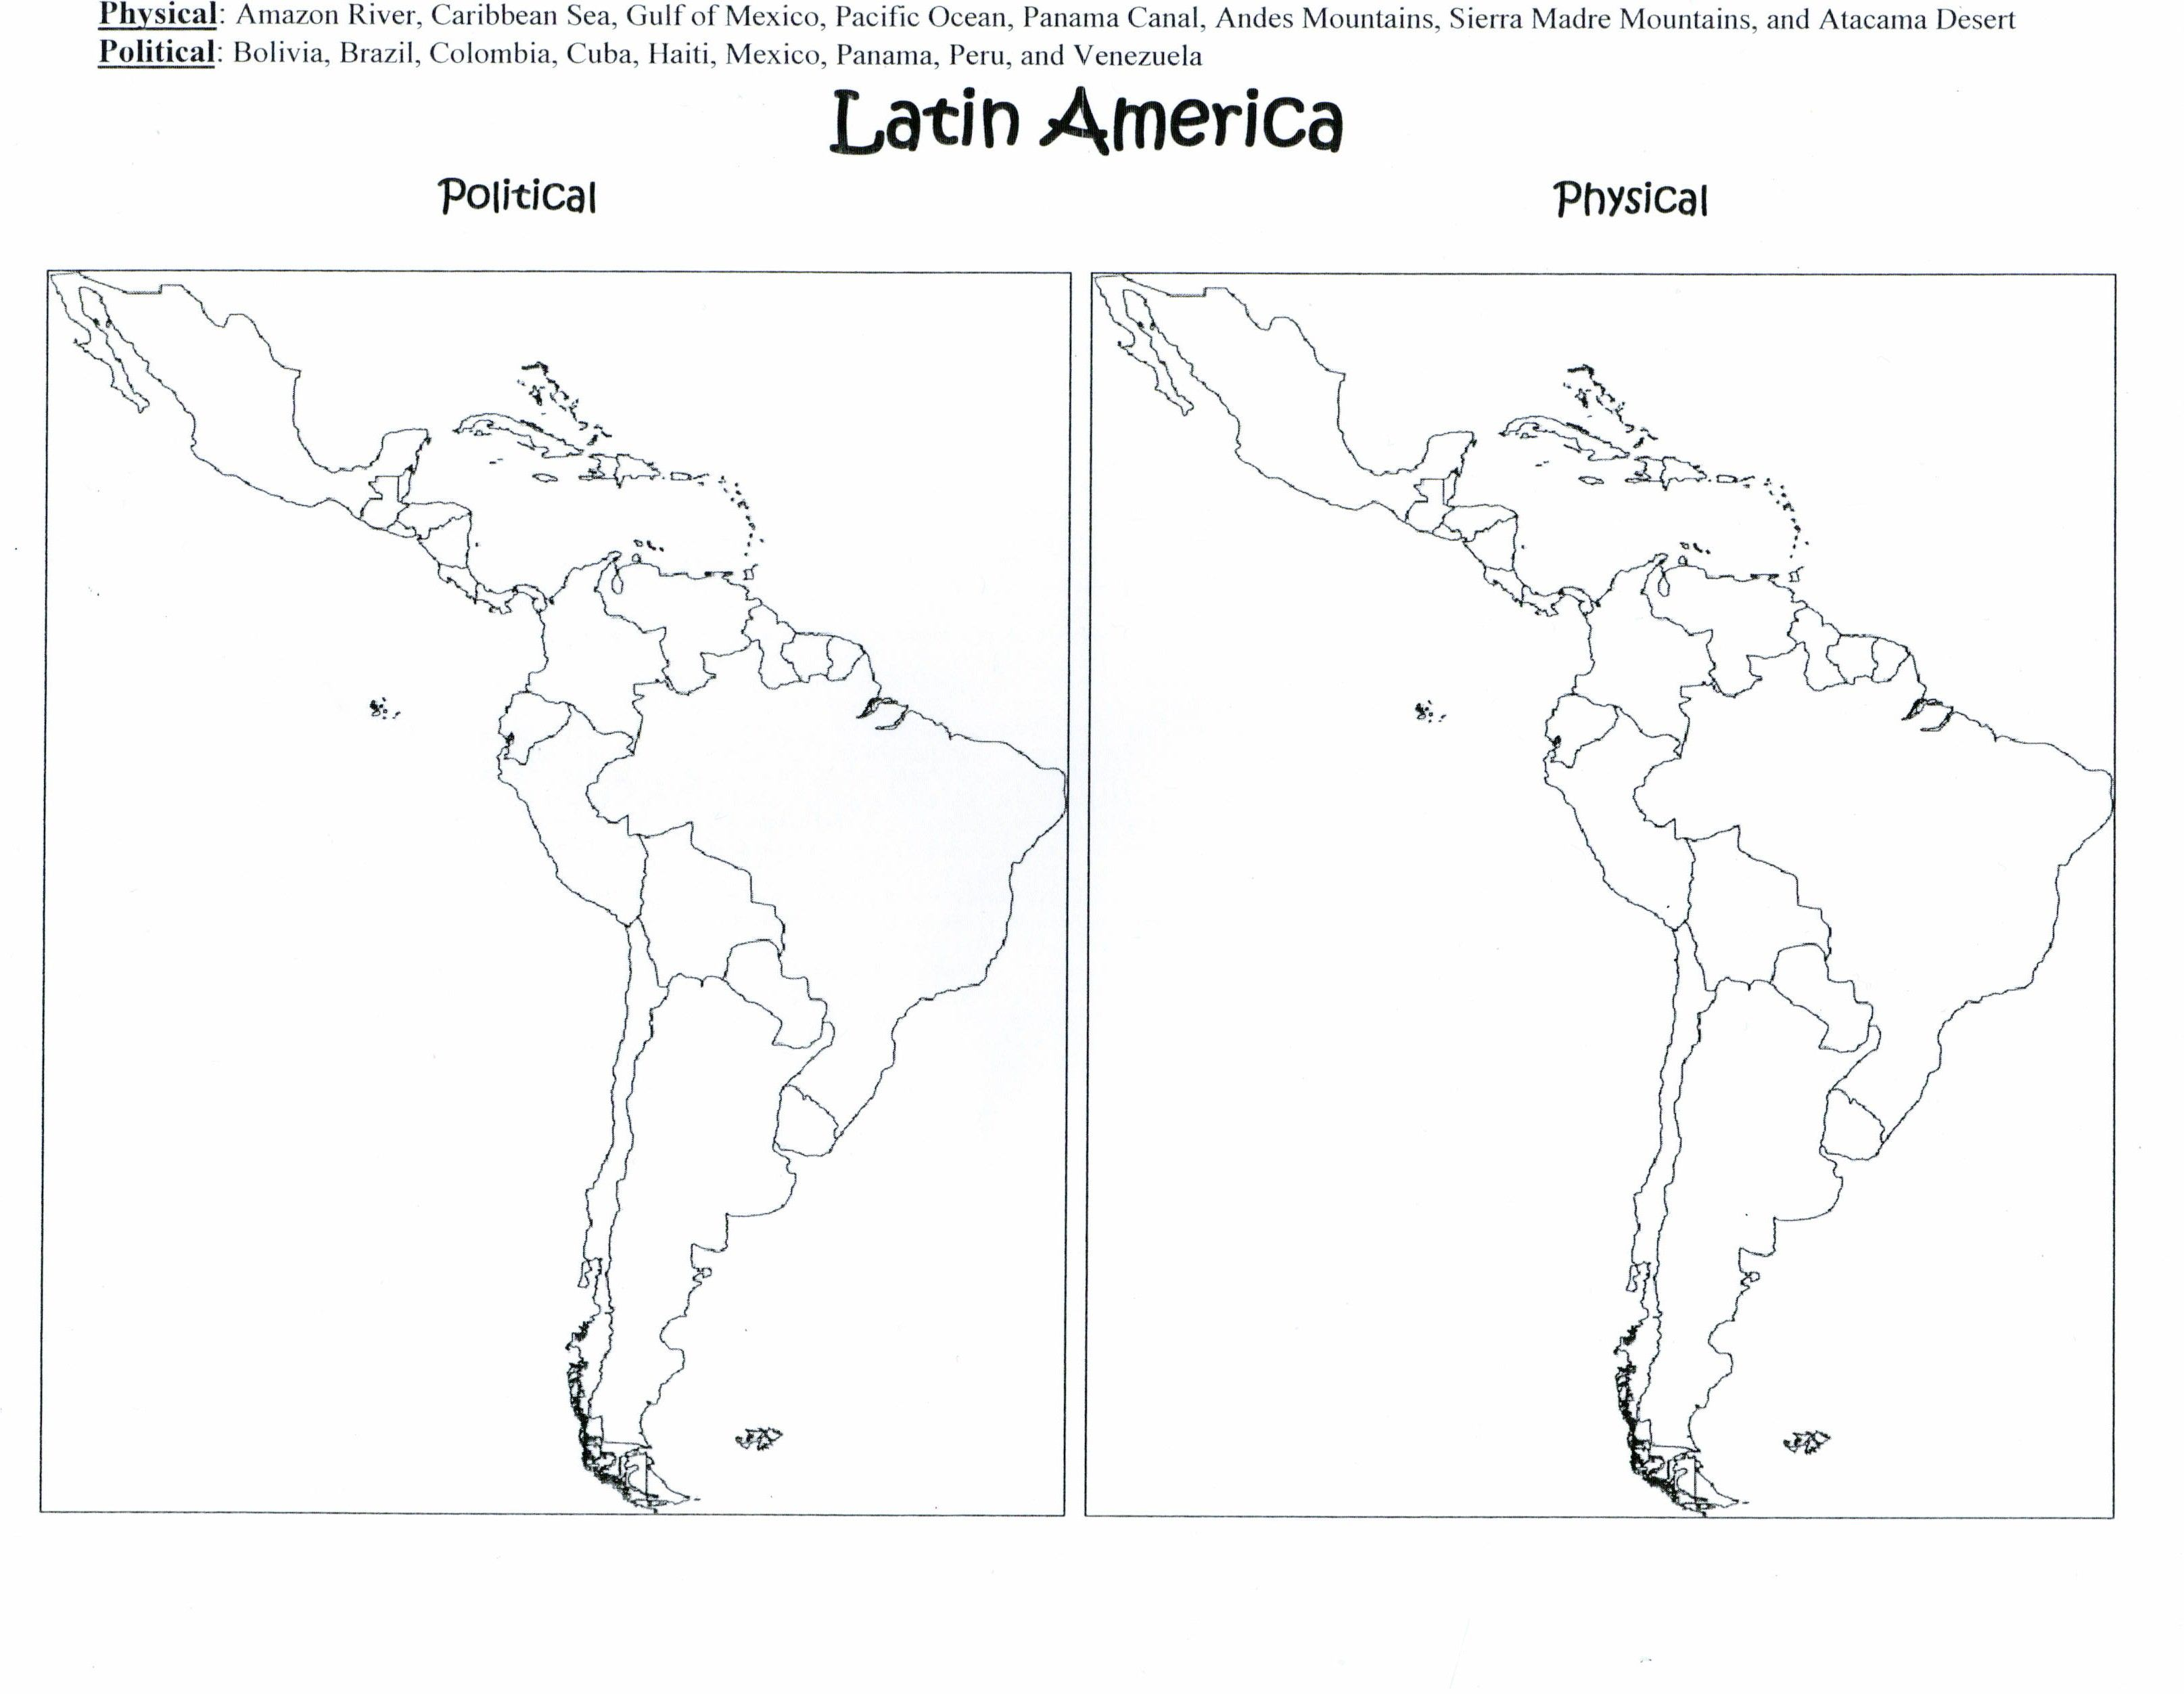 Latin America Politcal&Physical Maps Handout.jpg 3,229